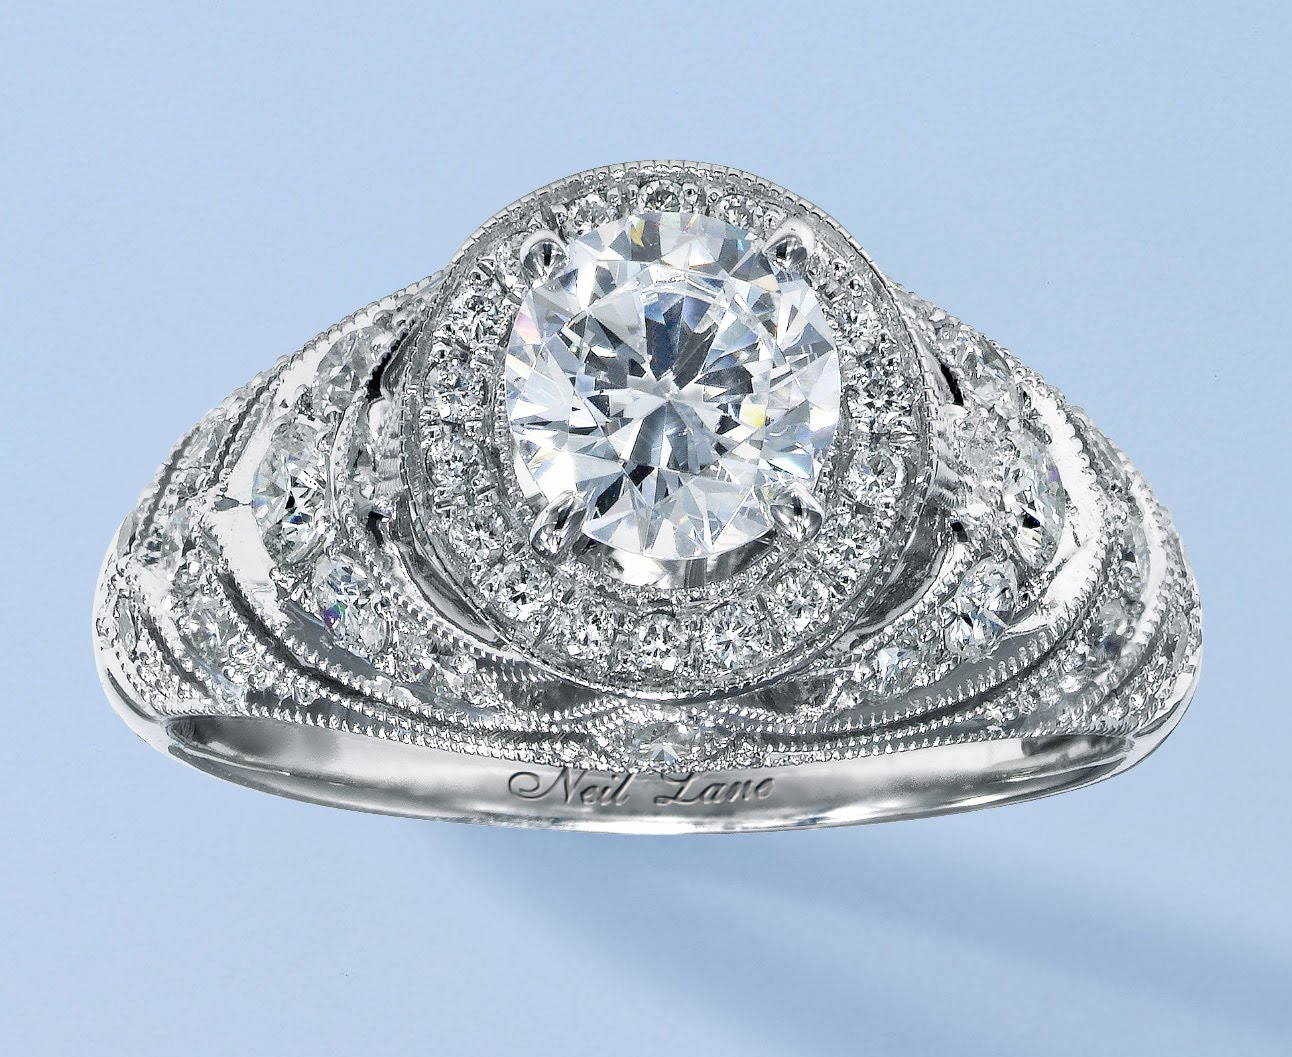 Neil Lane Creates Bridal Collection For Kay Jewelers